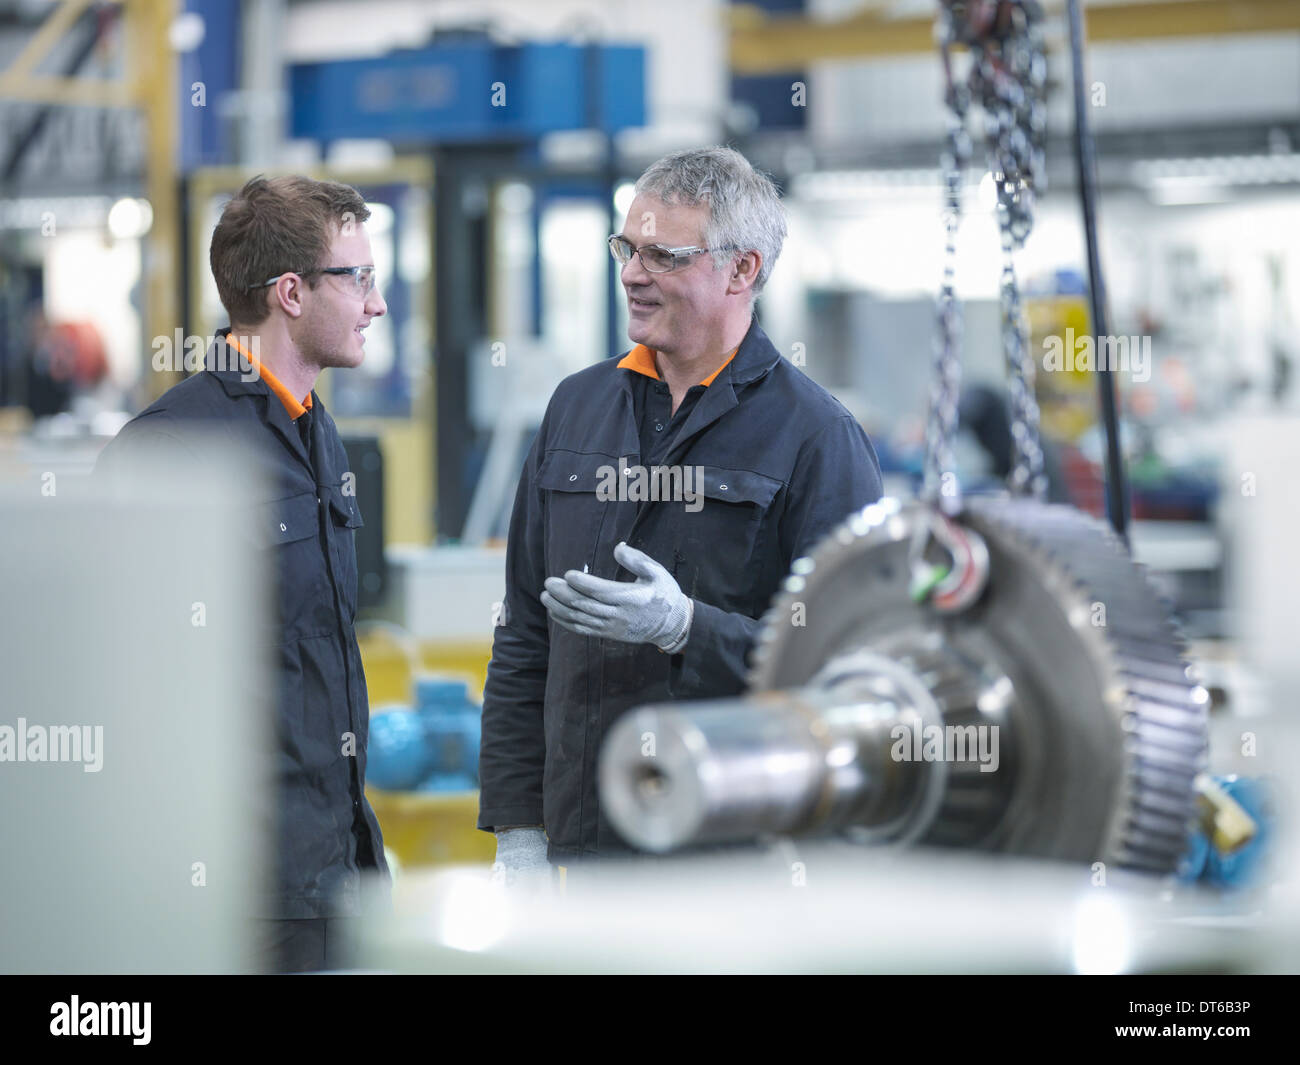 Engineer and apprentice in discussion next to gear wheel at work station in factory - Stock Image